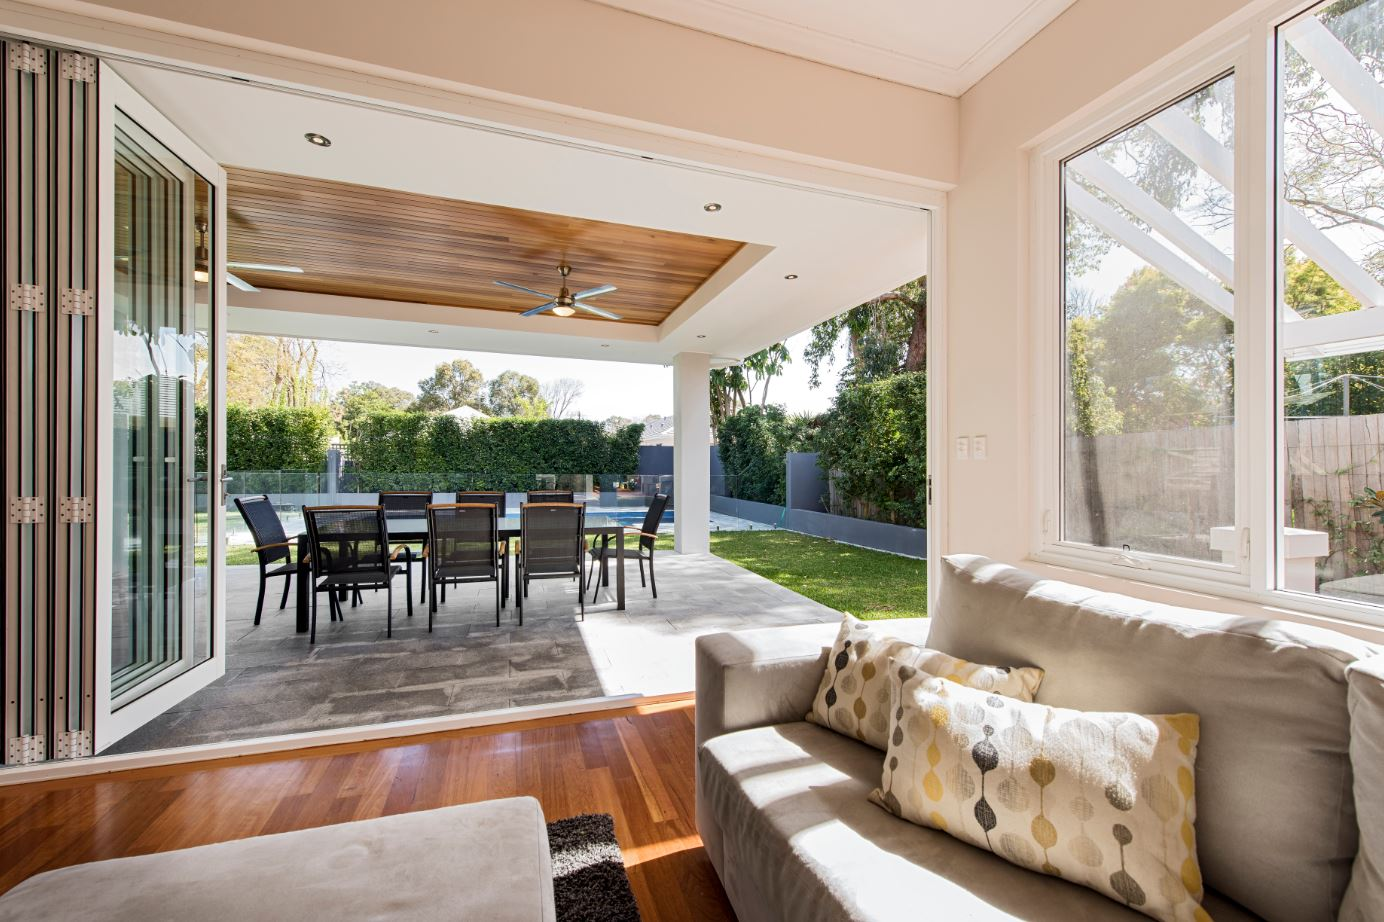 The stacking back doors make this home ideal for parties and entertaining. This is what's really missing from older homes in Perth – the ability to fling open the doors and live an alfresco lifestyle.